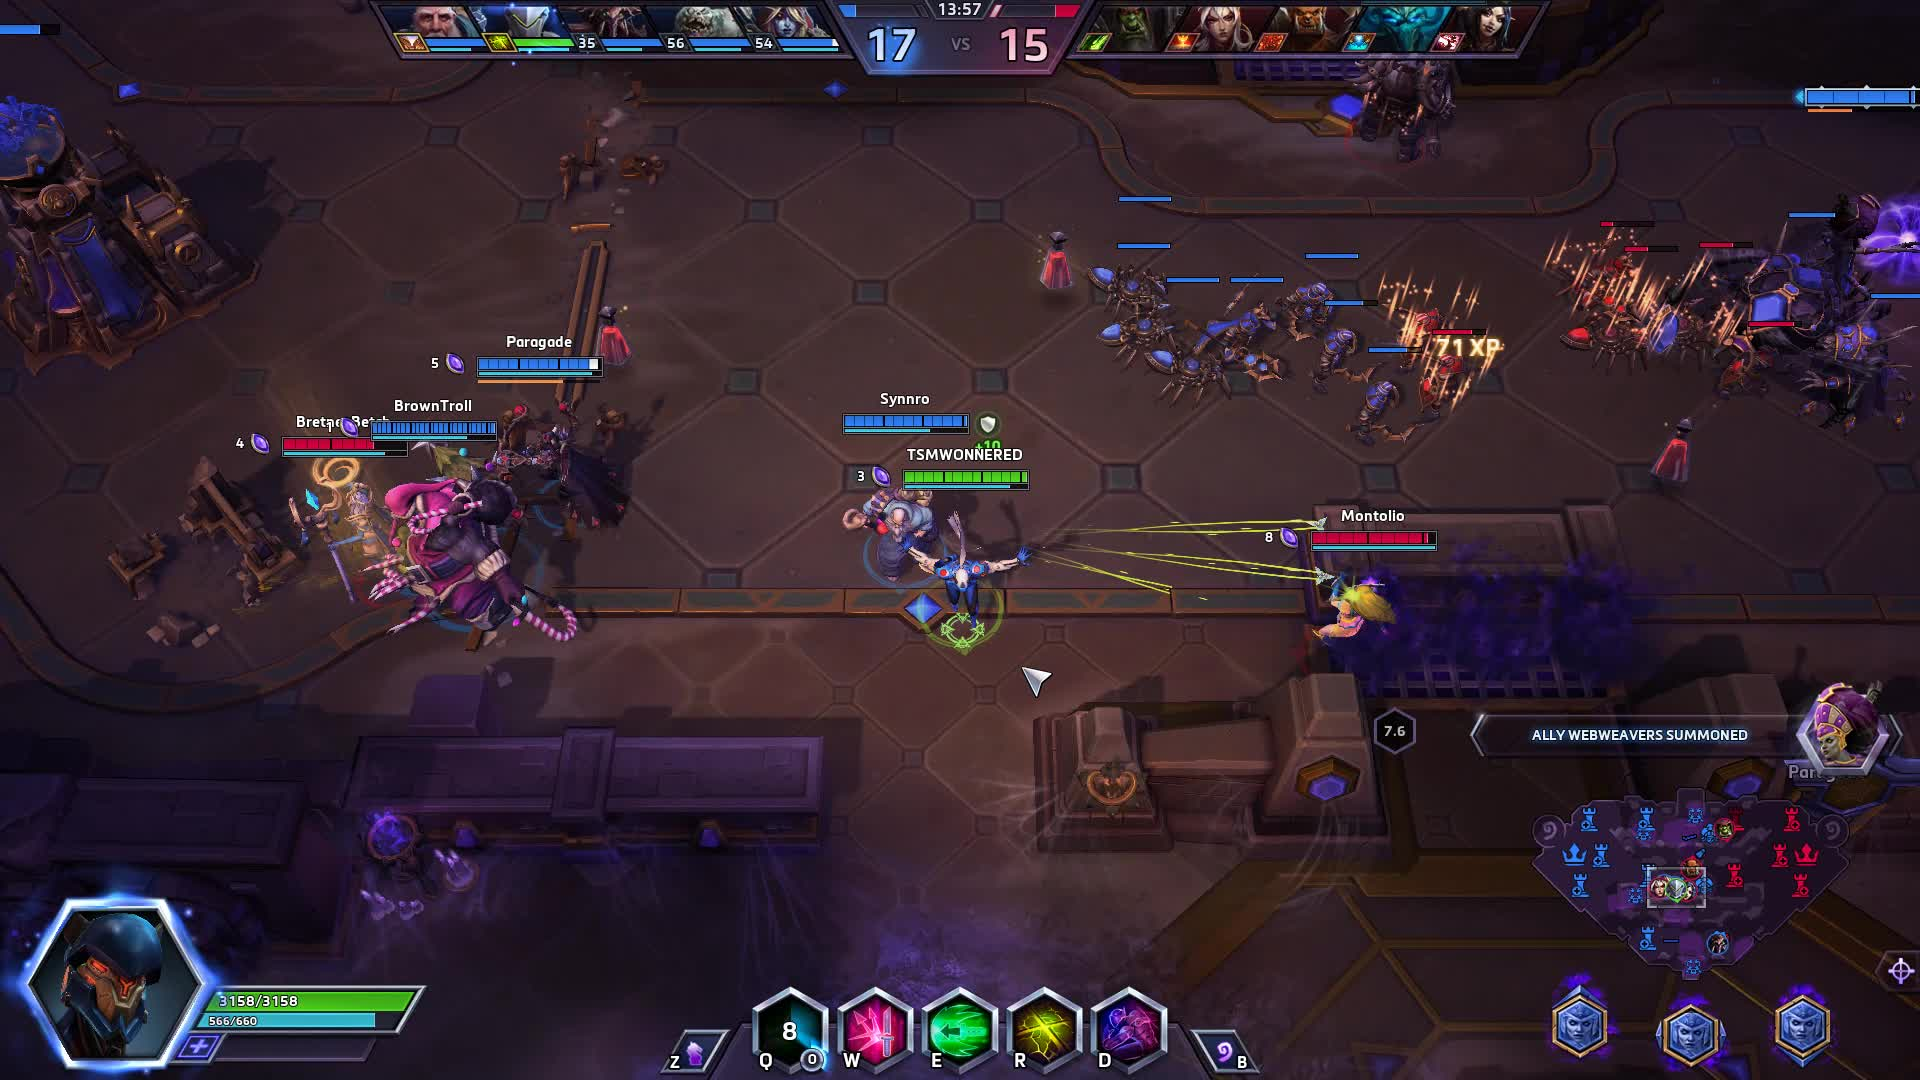 heroesofthestorm, vlc-record-2018-08-08-22h58m21s-Heroes of the Storm 2018.08.08 - 22.53.21.17.DVR.mp4- GIFs